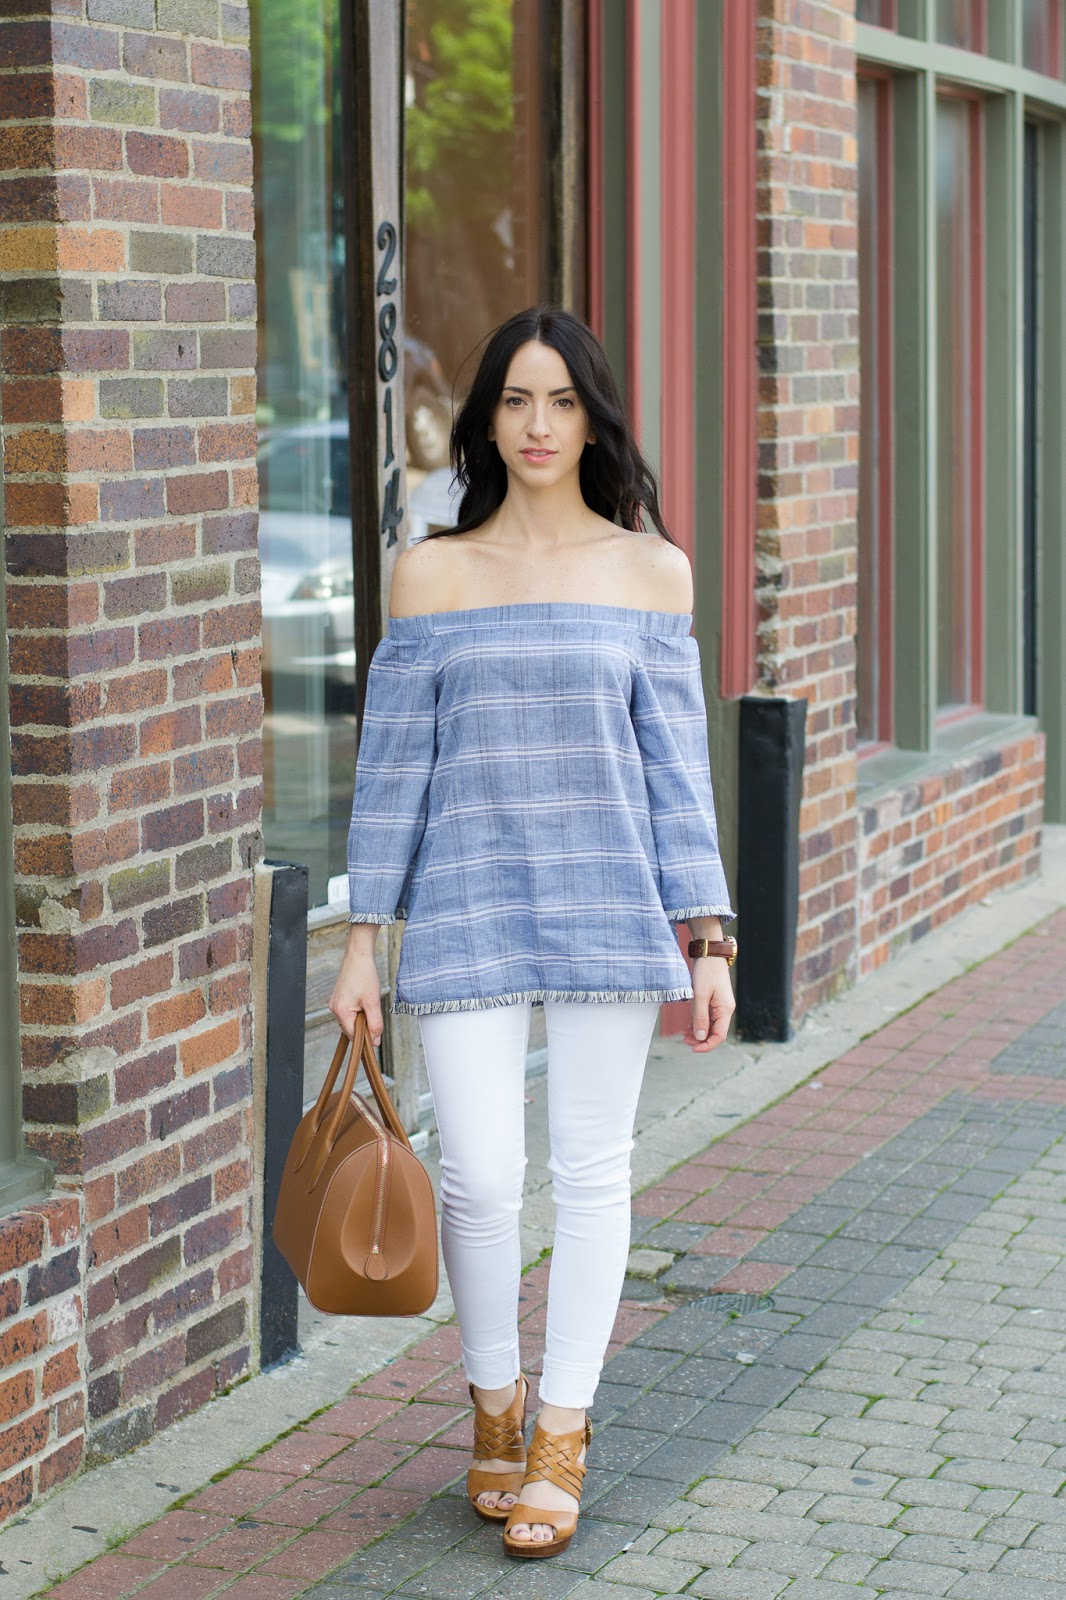 Chambray off the shoulder top with fringe sleeve detail, paired with white jeans and platform sandals